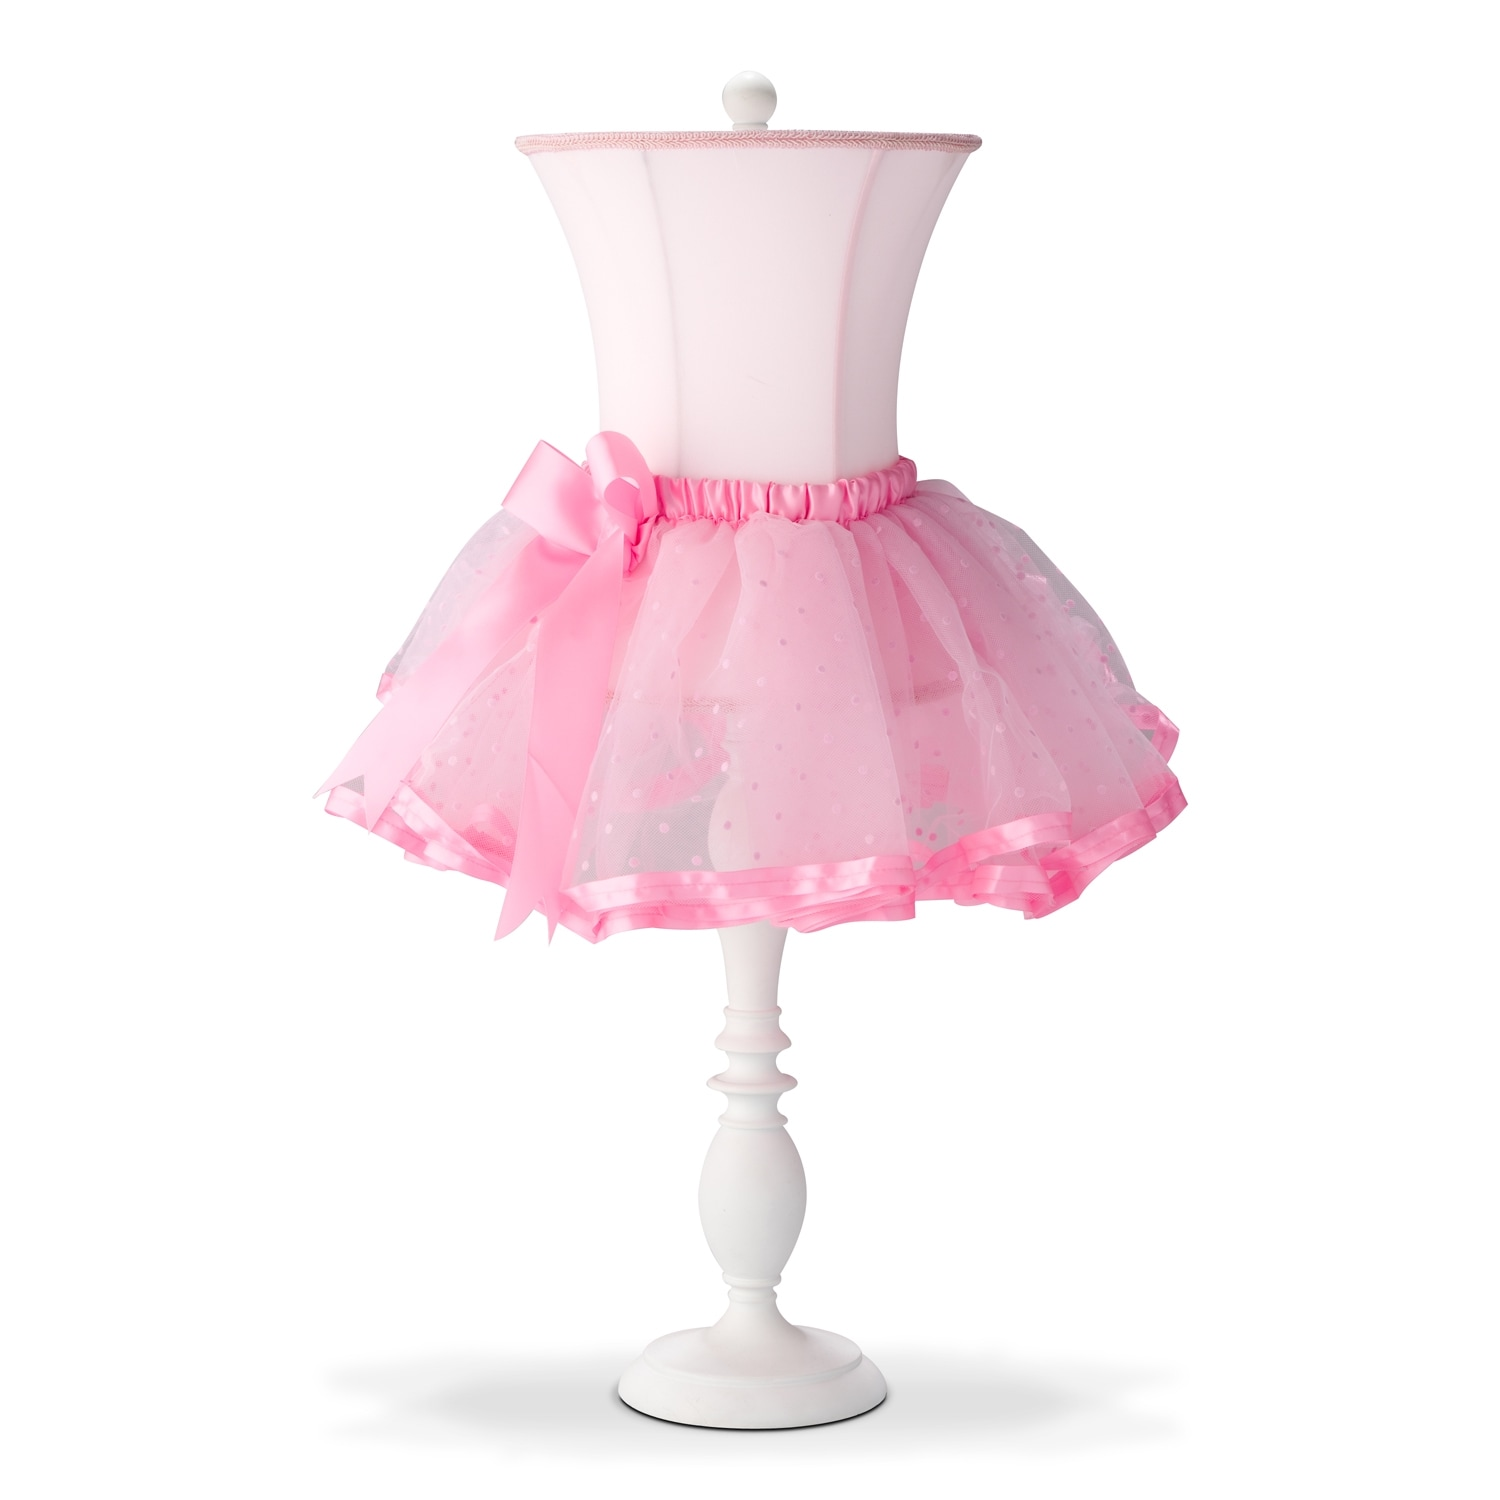 Ballet table lamp best inspiration for table lamp ballerina tutu lighting table lamp american signature furniture geotapseo Image collections